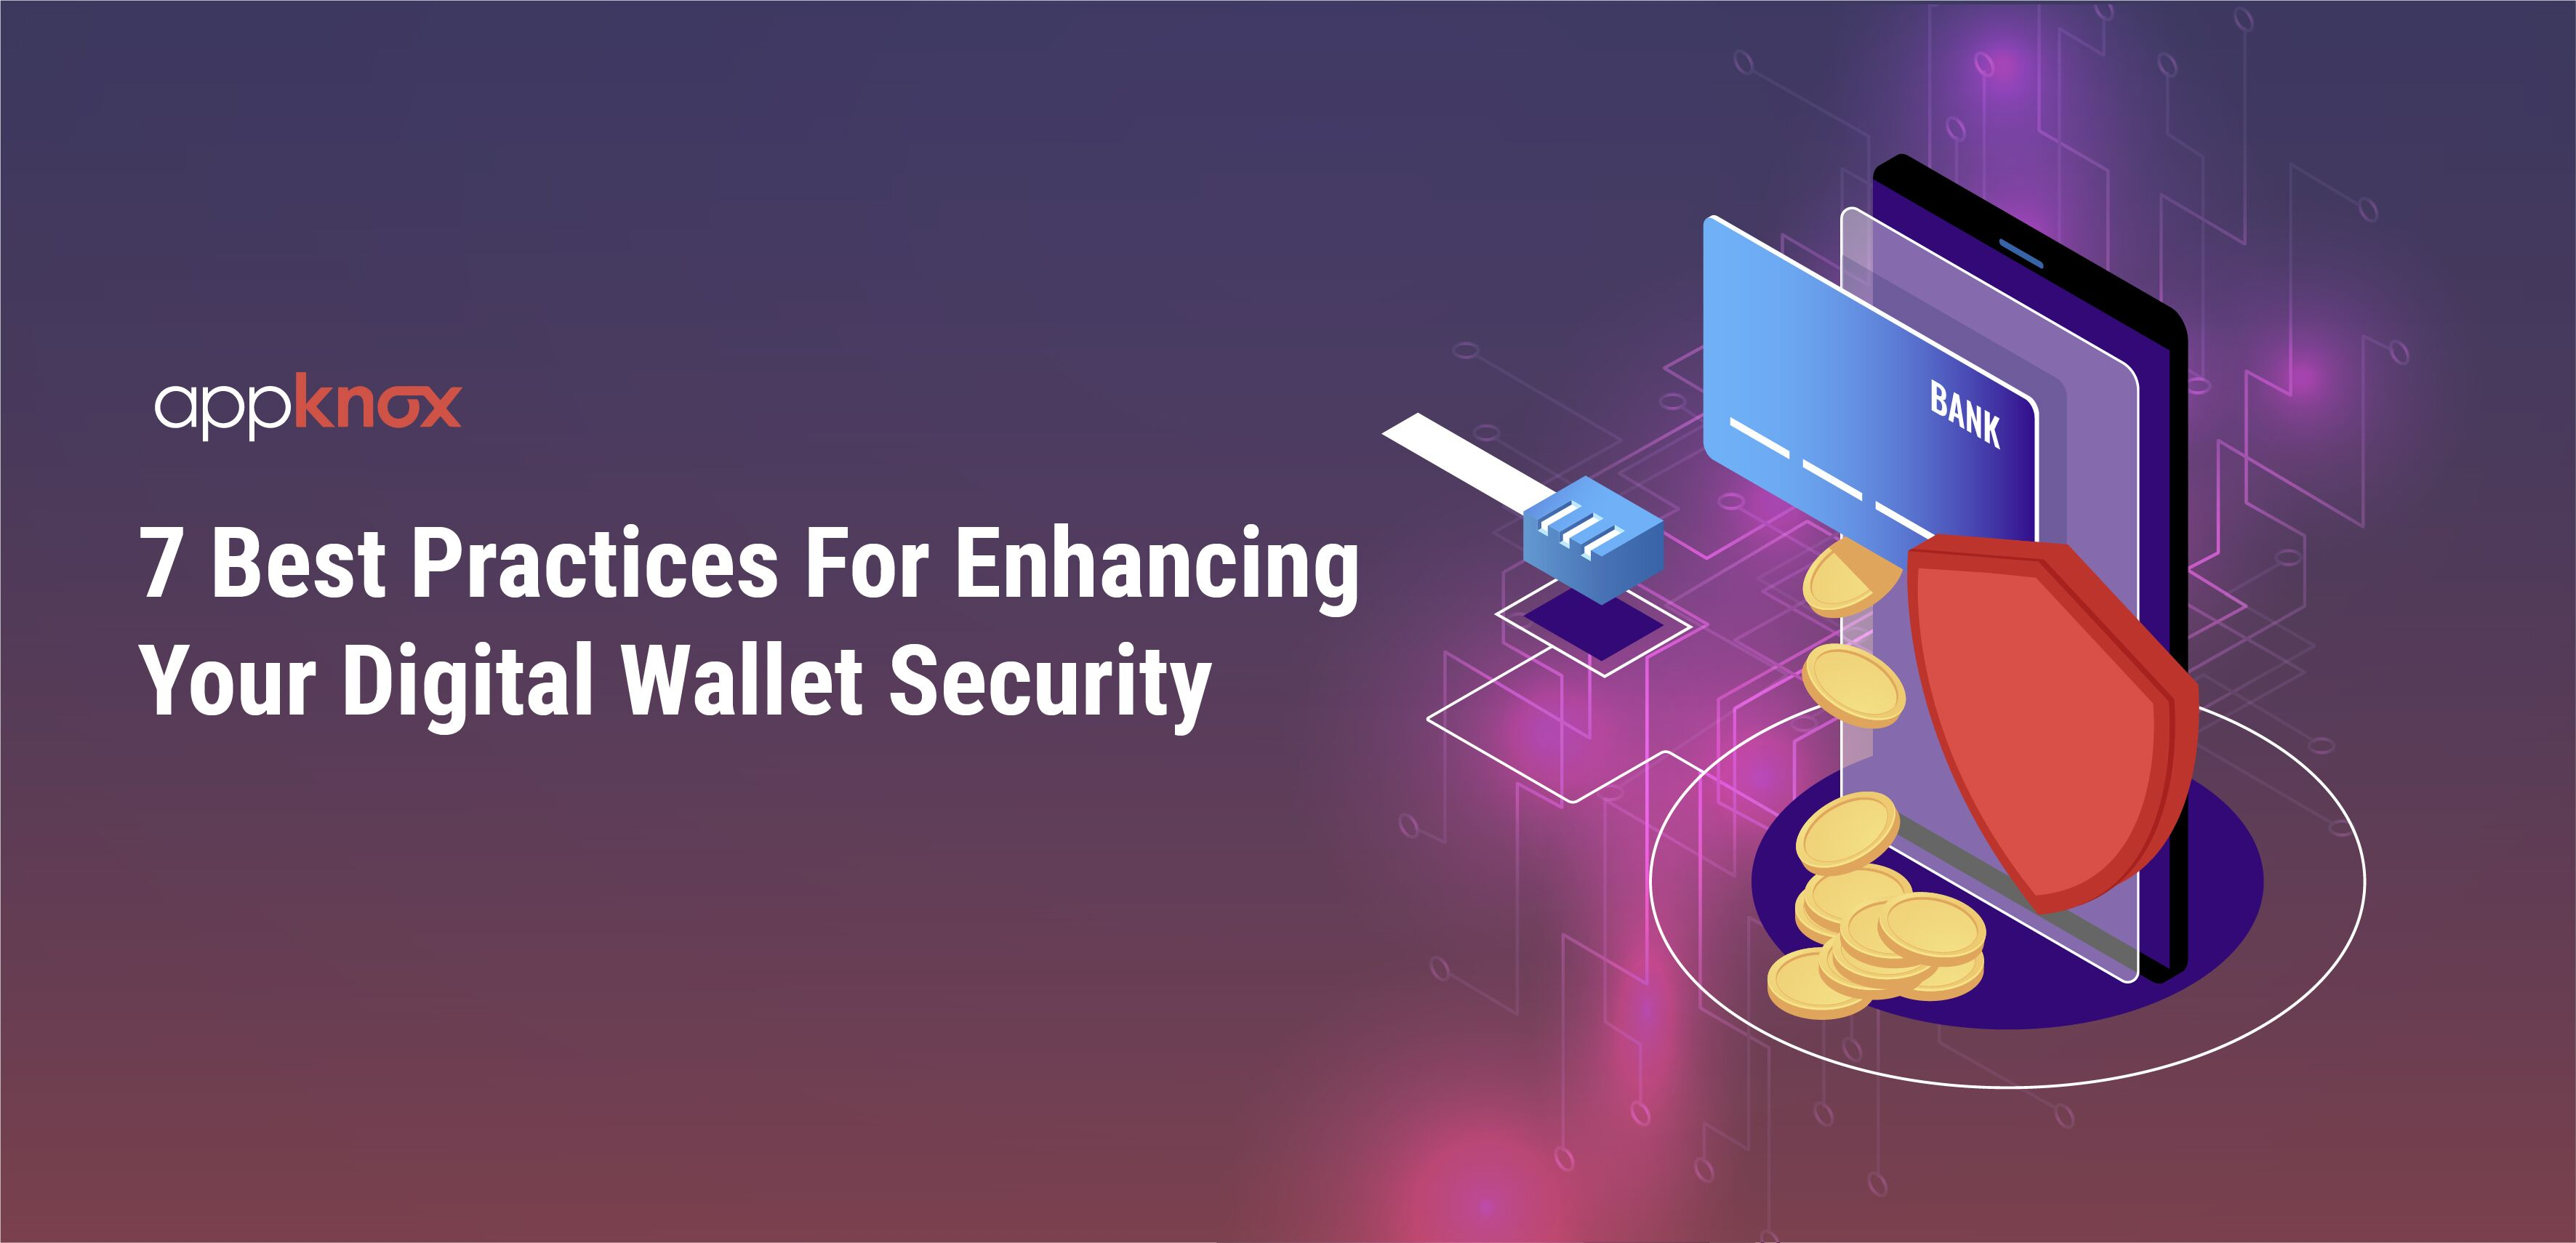 7 Best Practices For Enhancing Your Digital Wallet Security